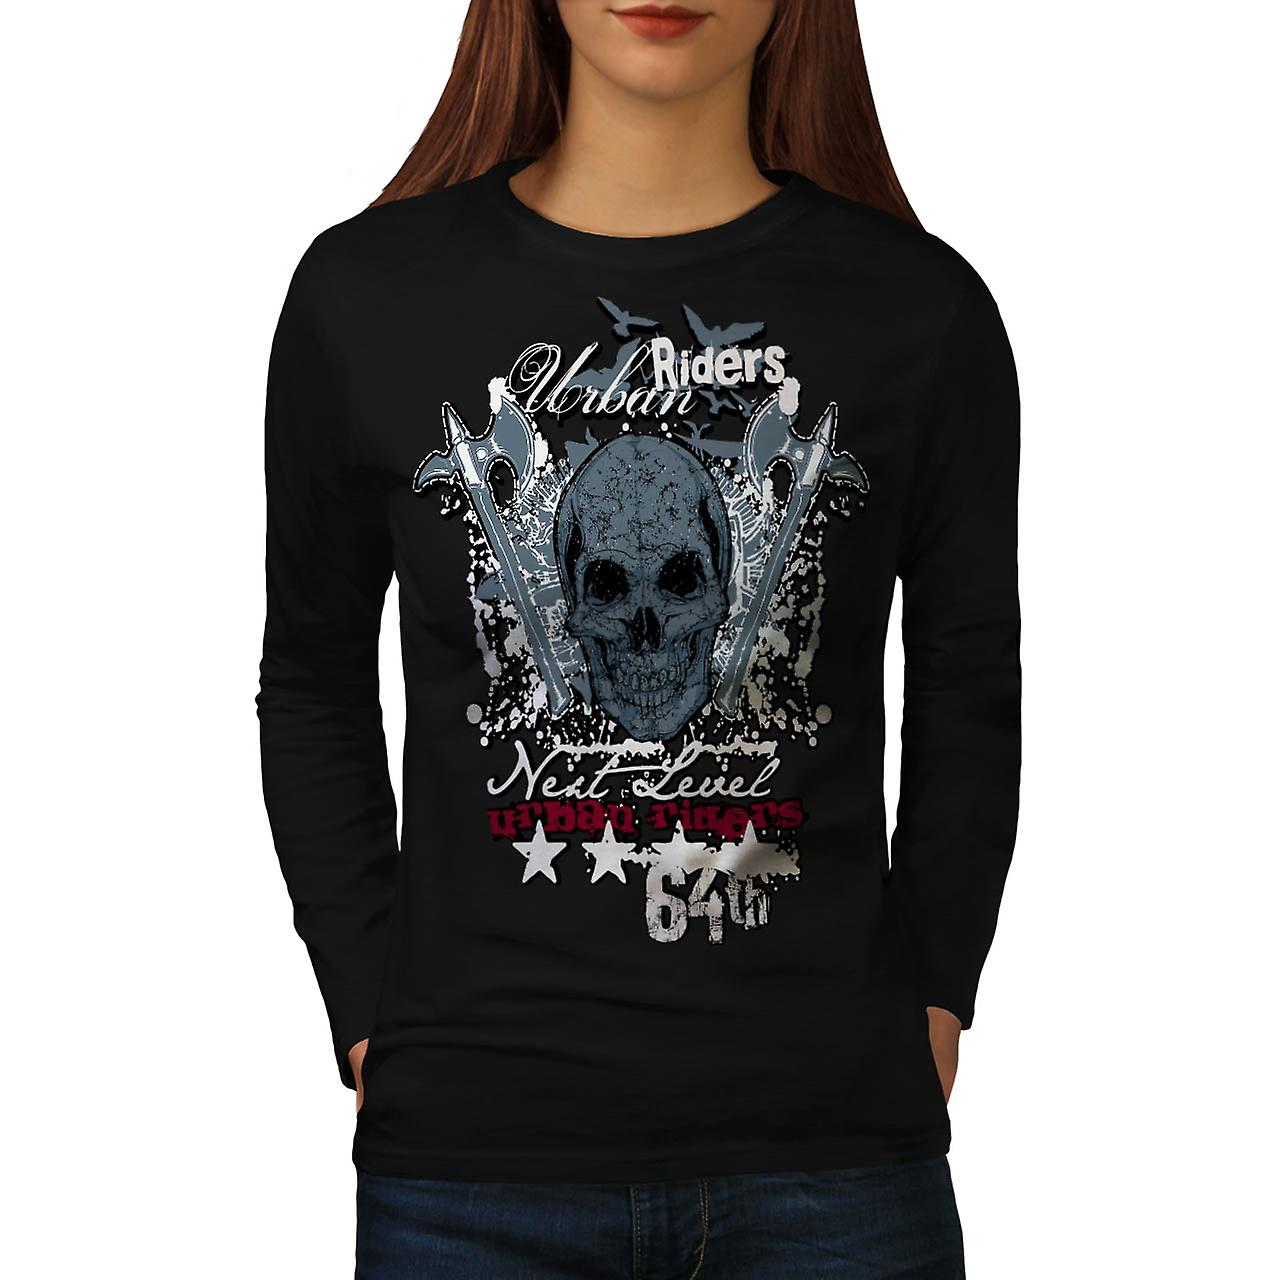 Urban Hell Rise Rider Bike Skull Women Black Long Sleeve T-shirt | Wellcoda